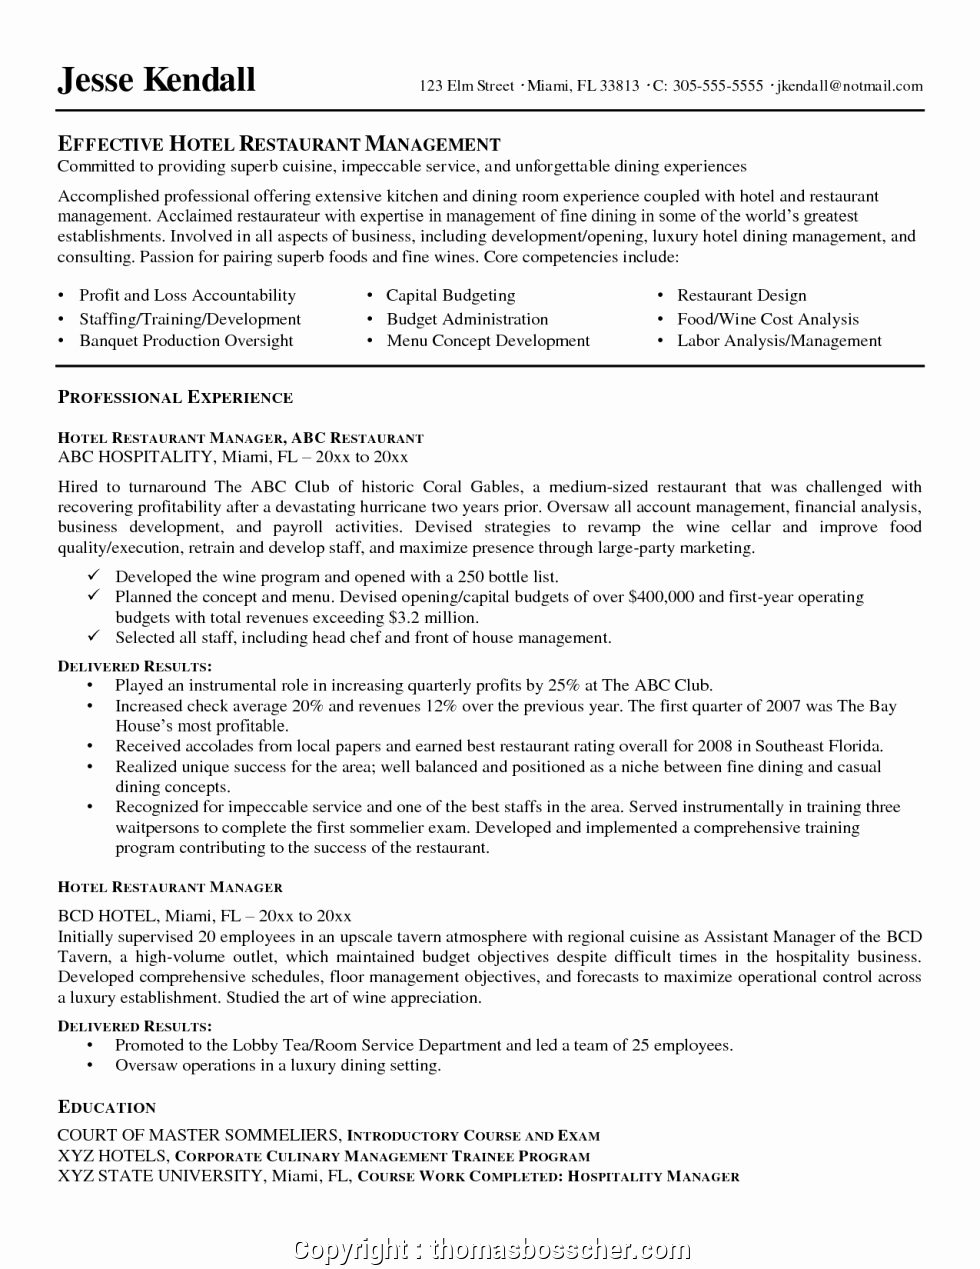 Restaurant General Manager Resume Example Inspirational top Restaurant General Manager Resume Examples Restaurant